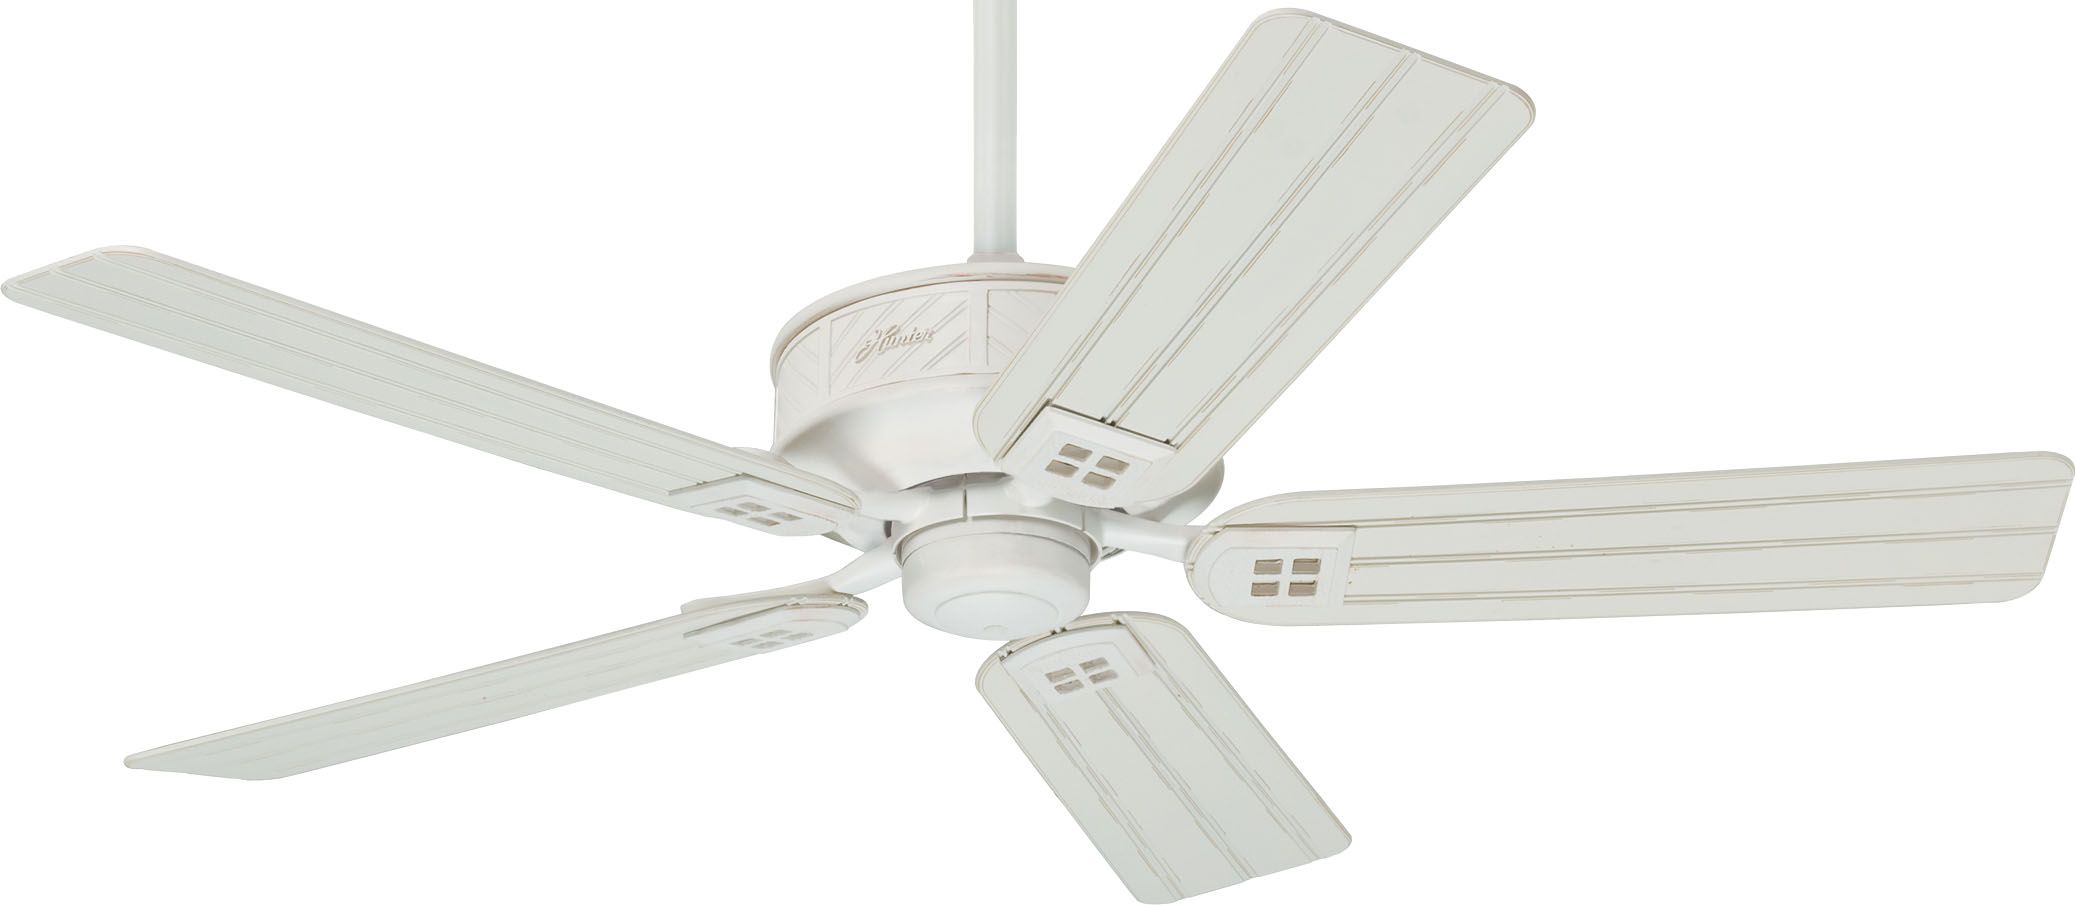 Hunter 28803 Orchard Park Distressed White Energy Star 52 Ceiling Fan Ceiling Fan Ceiling Fans Without Lights Outdoor Ceiling Fans